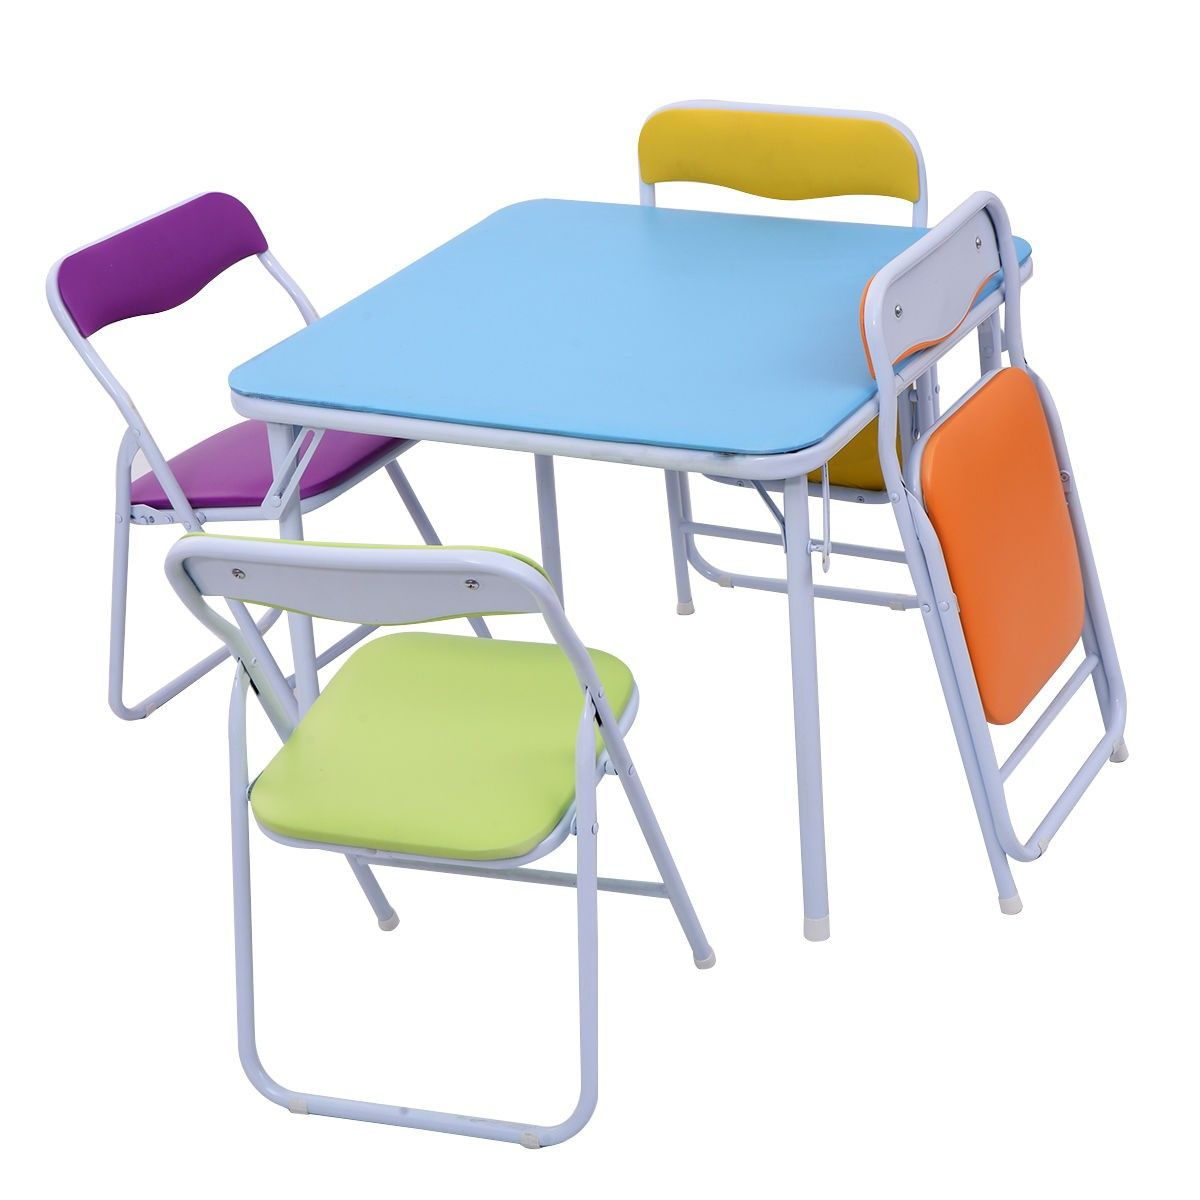 This Child Sized Folding Table And Chair Set Is A Perfect Center For  Toddlers To